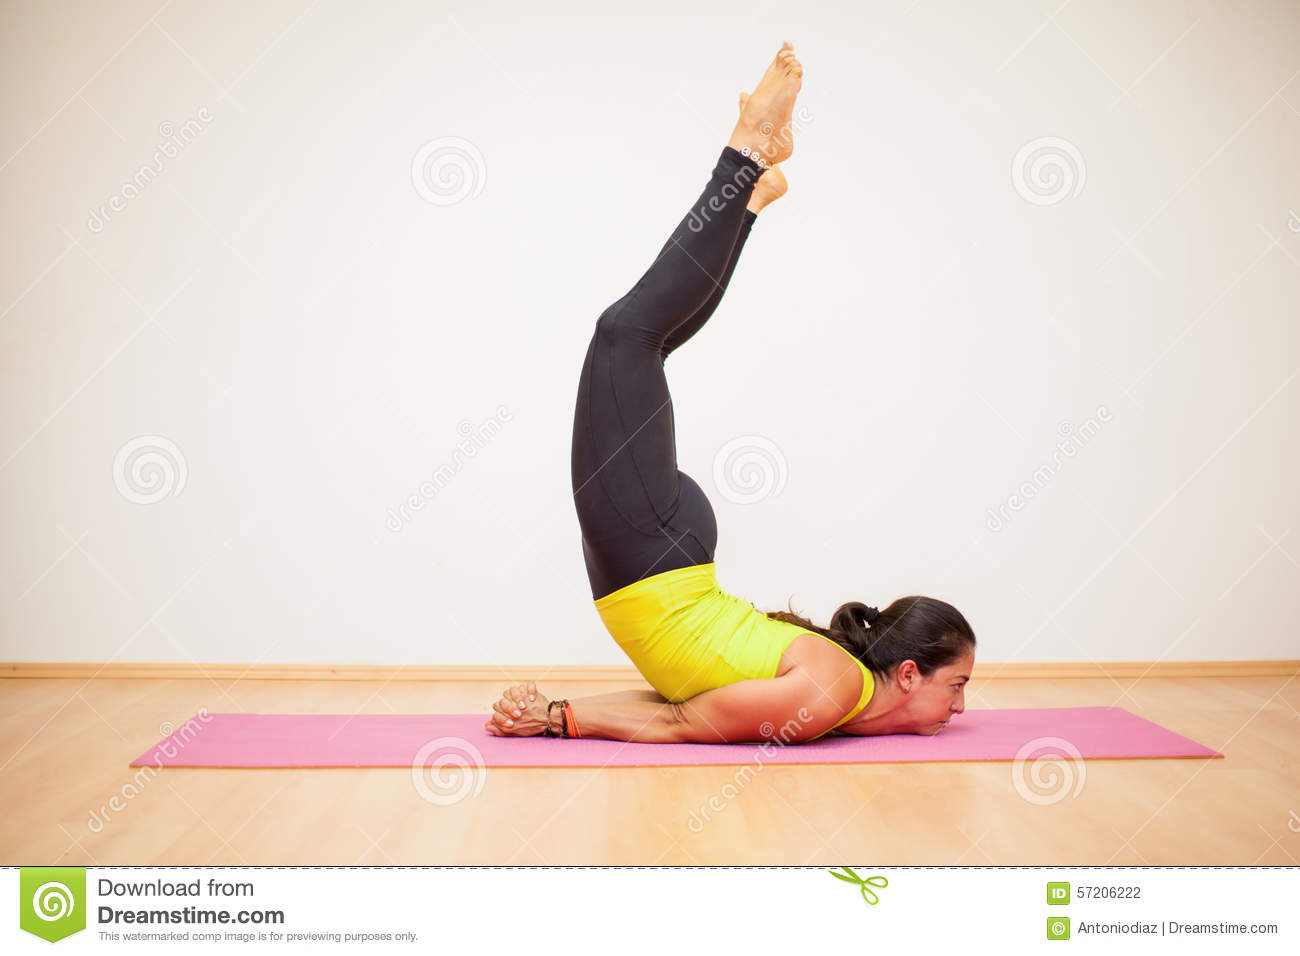 Strength And Balance In Yoga Class Stock Photo - Image of